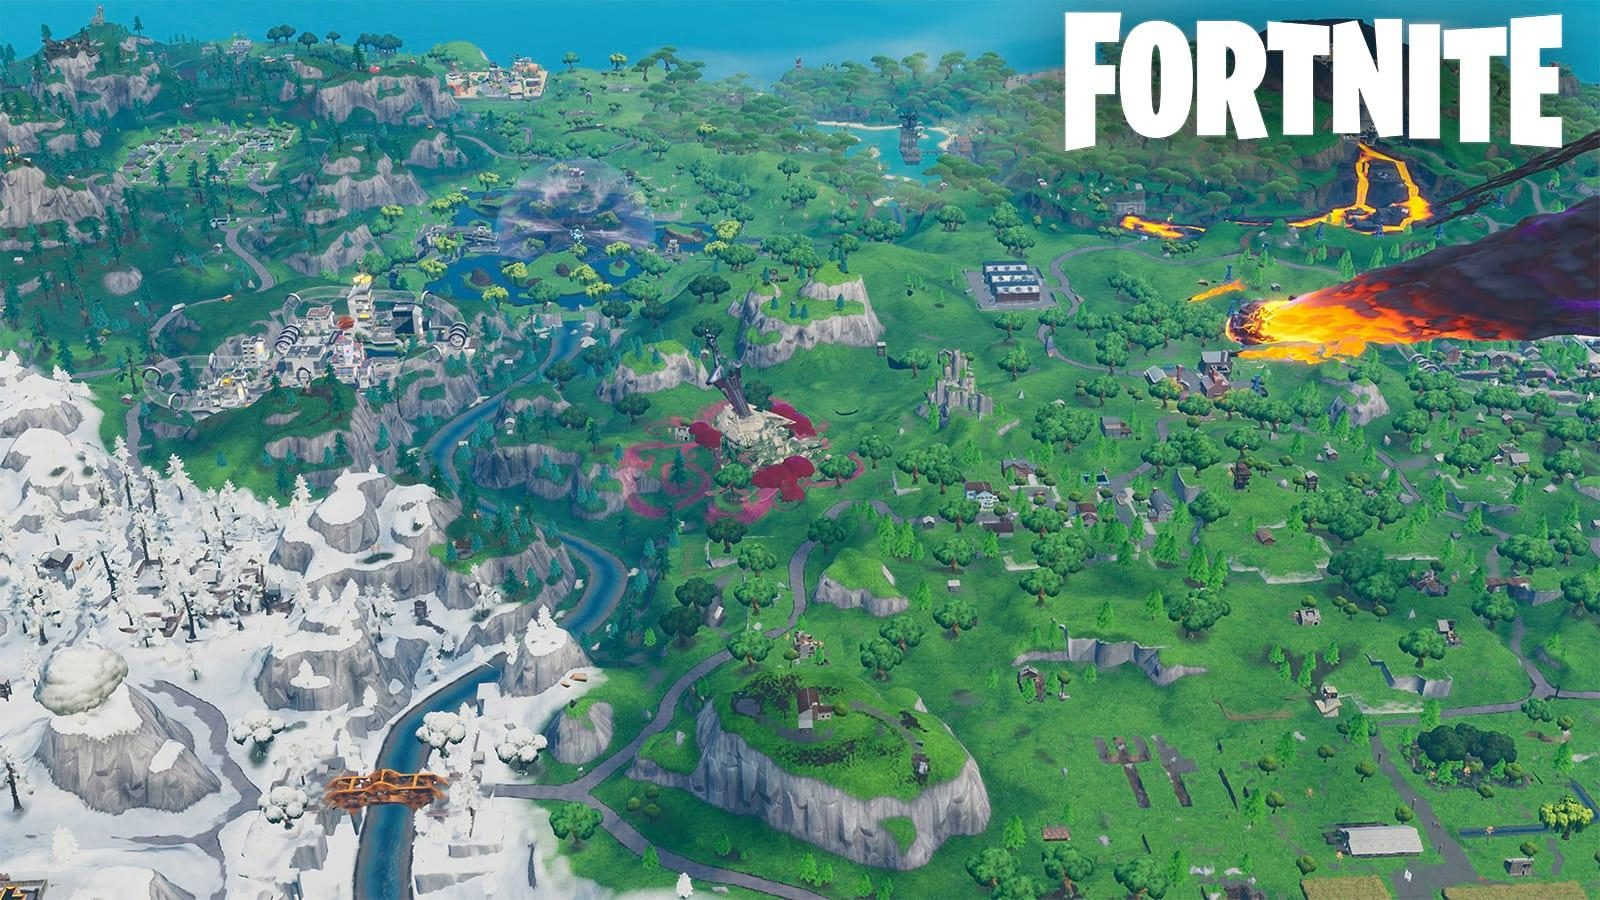 Fortnite Leak Drops Biggest Hint Of Map Being Destroyed Yet Dexerto This is a brand new map that looks very little like the old fortnite map, other than in general, being an island. fortnite leak drops biggest hint of map